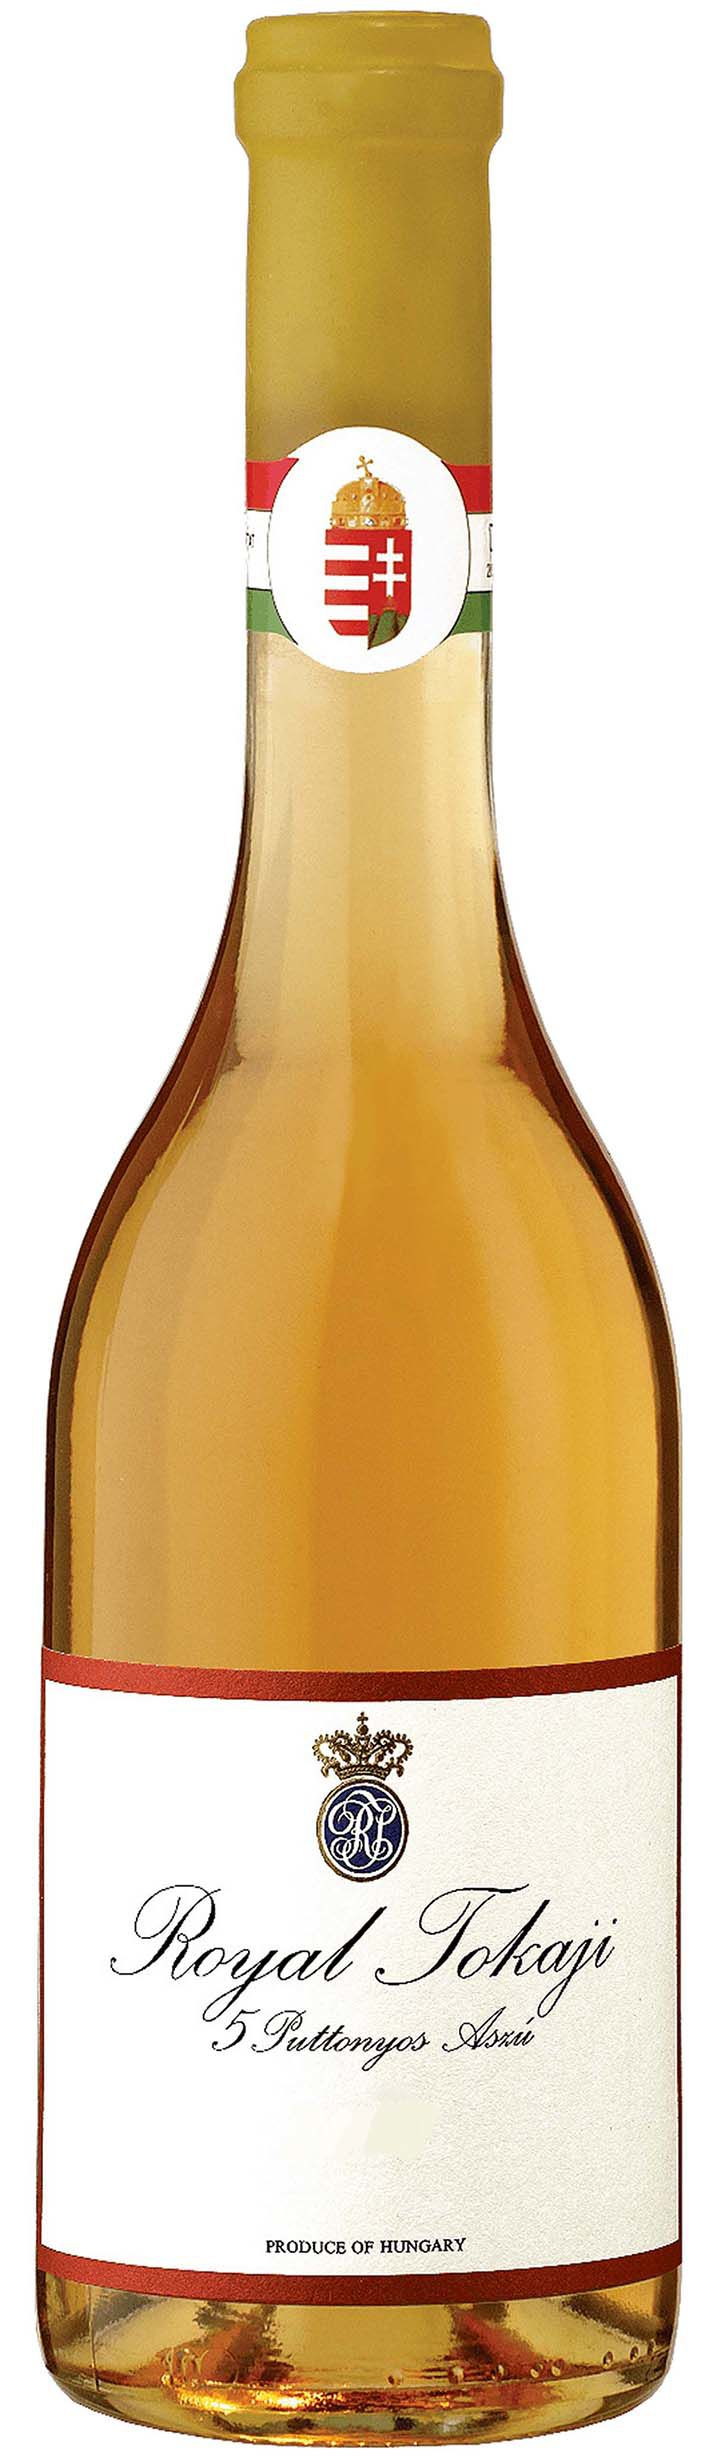 New-Royal-Tokaji-Red-Label-5-Puttonyos.jpg